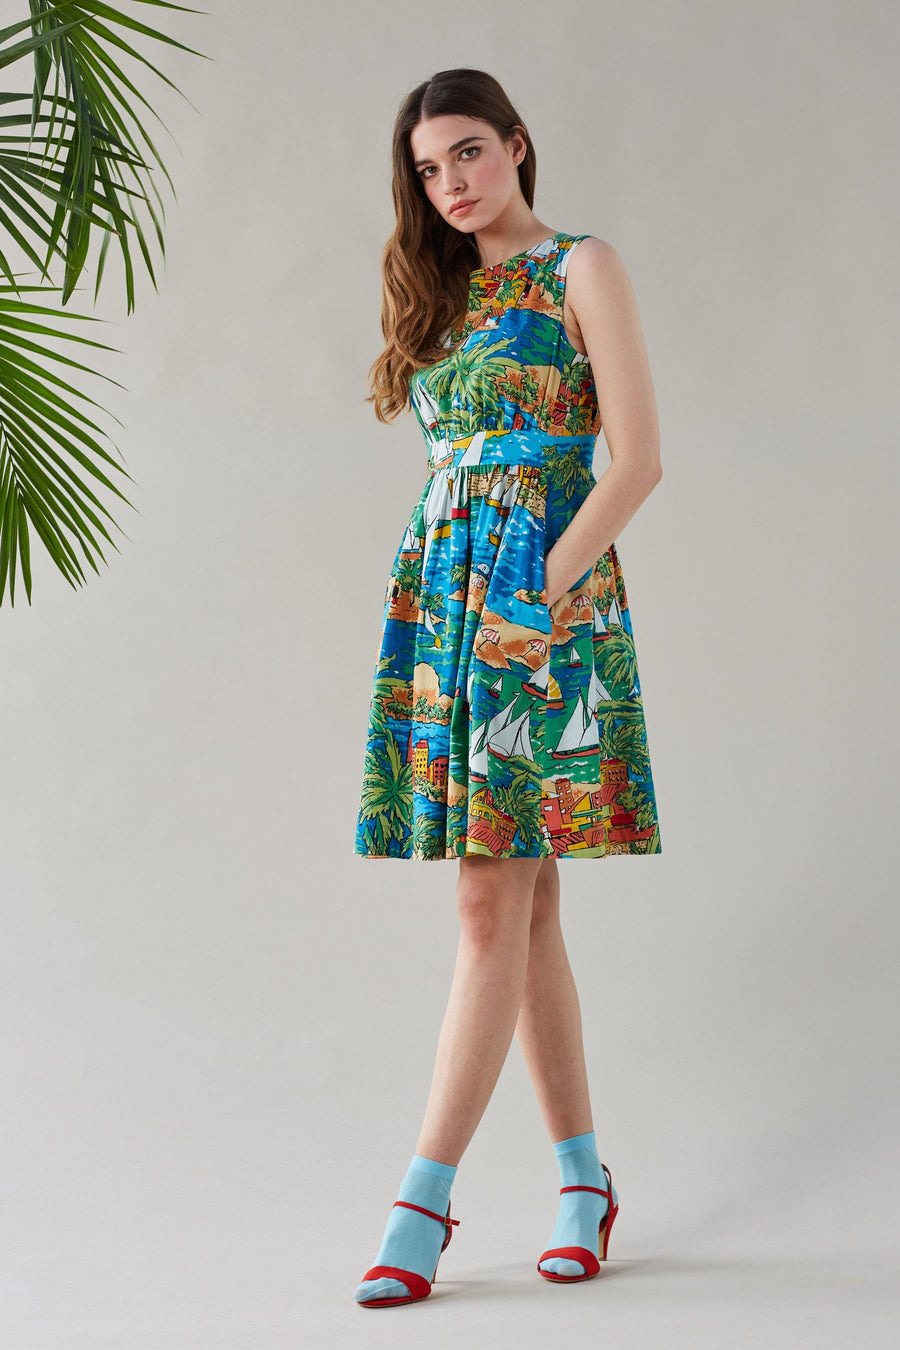 San Jose Bay Lucy Dress Dress BouChic | Homeware, Fashion, Gifts, Accessories